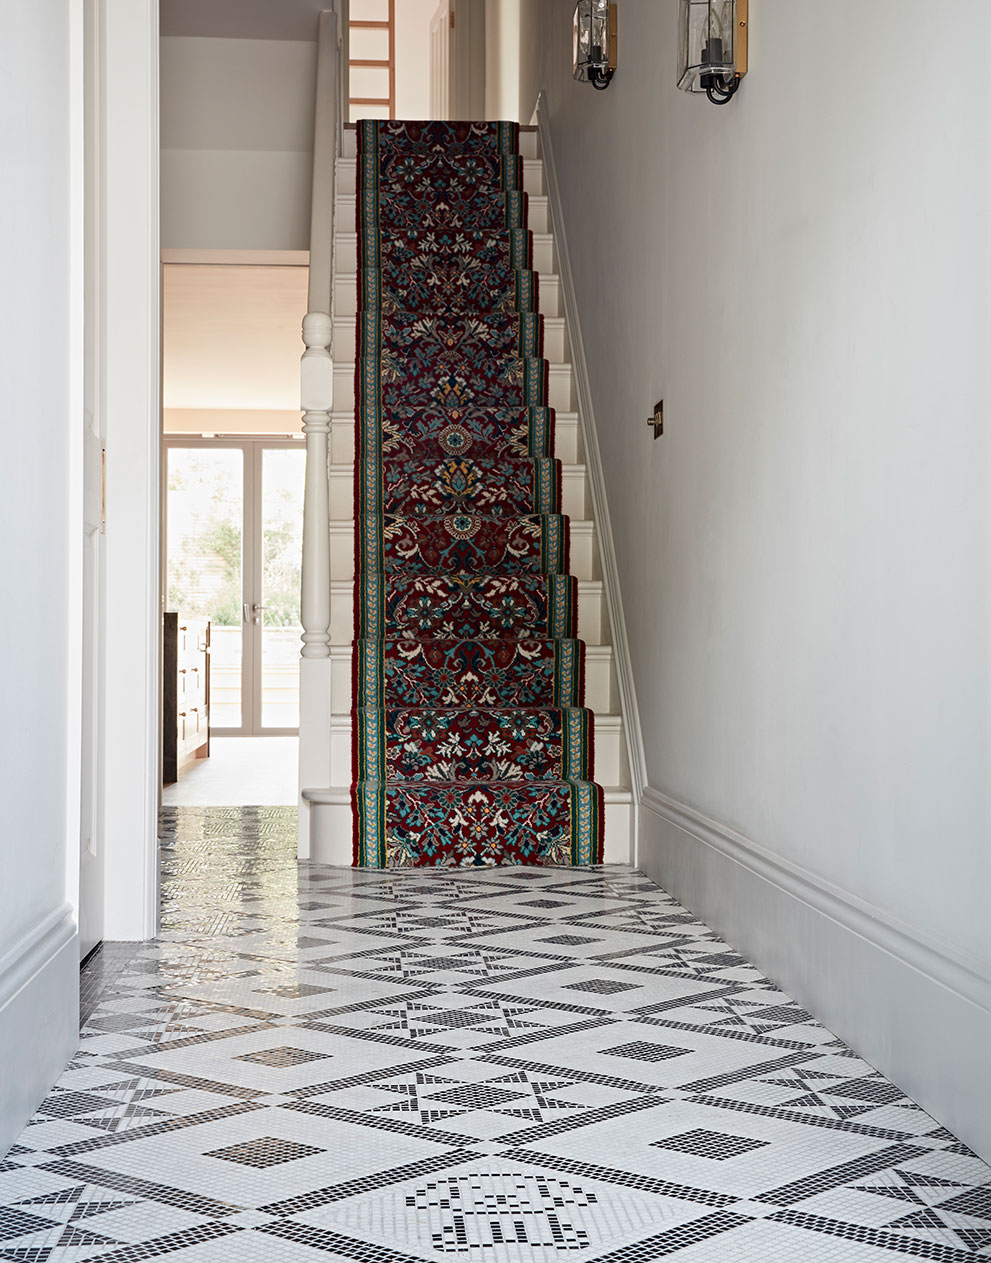 Queens Park hallway with tiled floor and carpet runner up the stairs